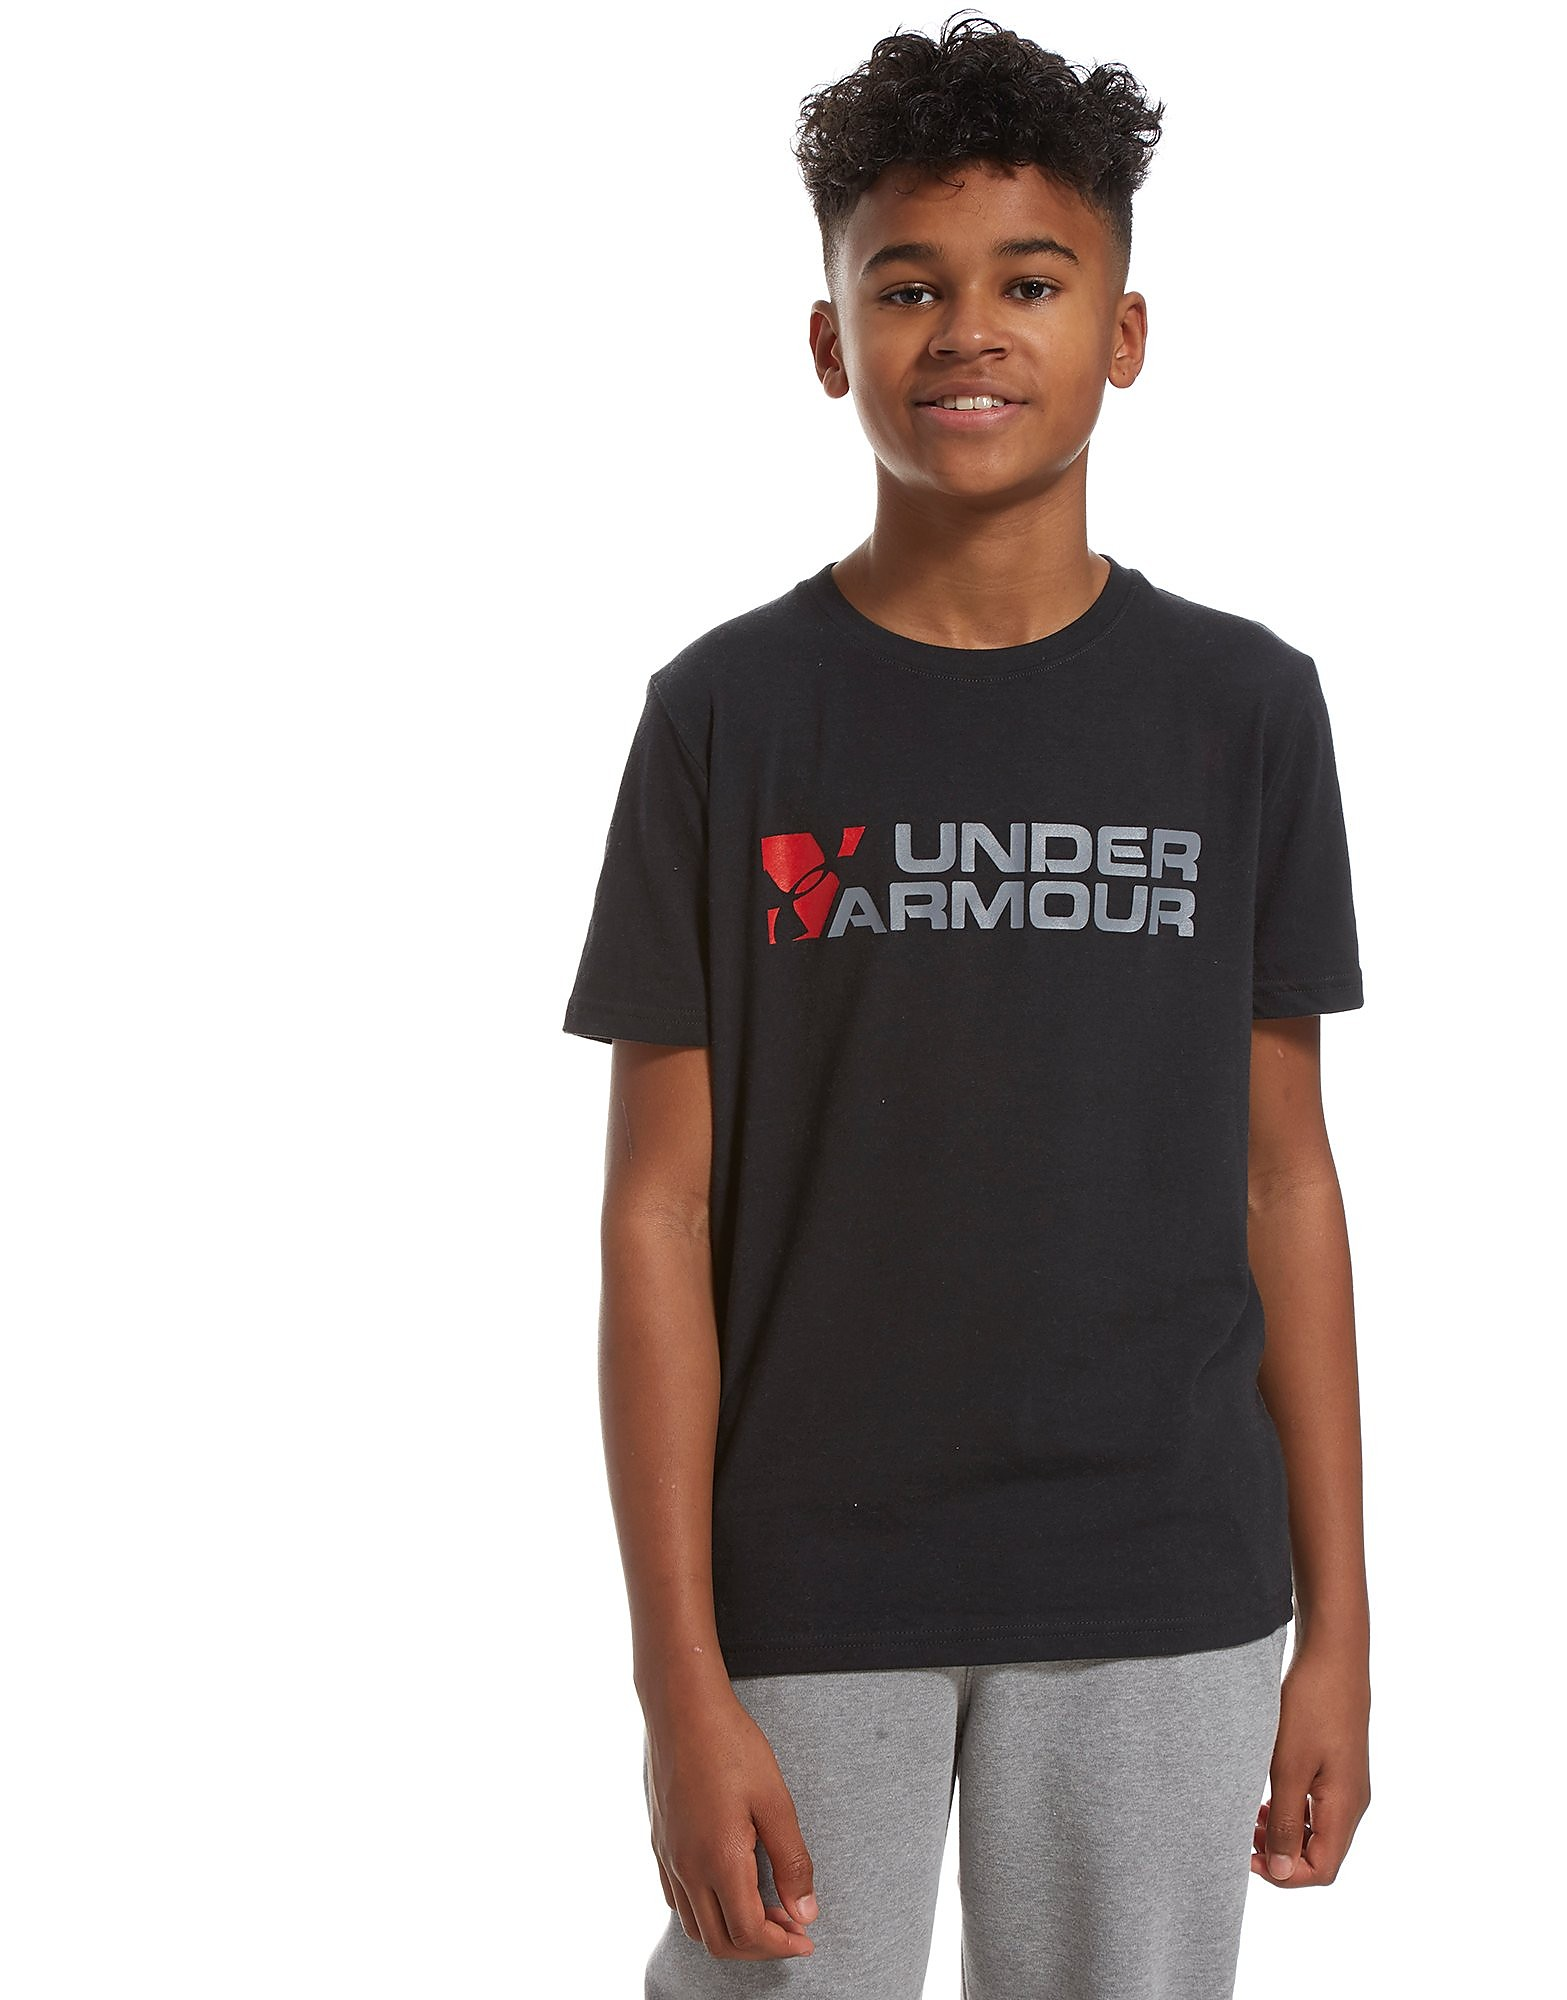 Under Armour Duo Brand T-Shirt Junior